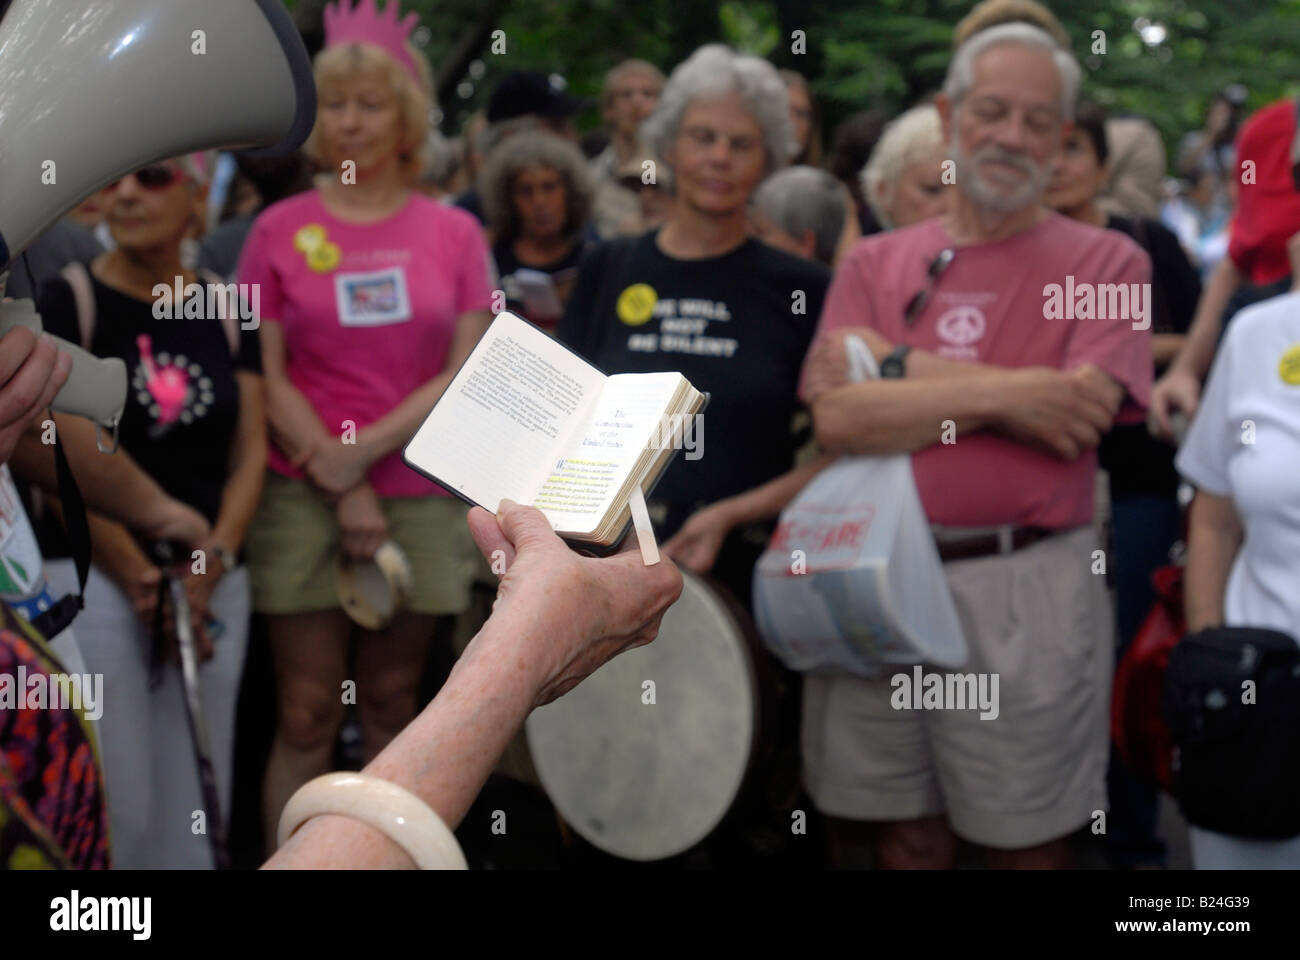 Volunteers read aloud passages from the United States Constitution the Bill of Rights and the Declaration of Independence - Stock Image